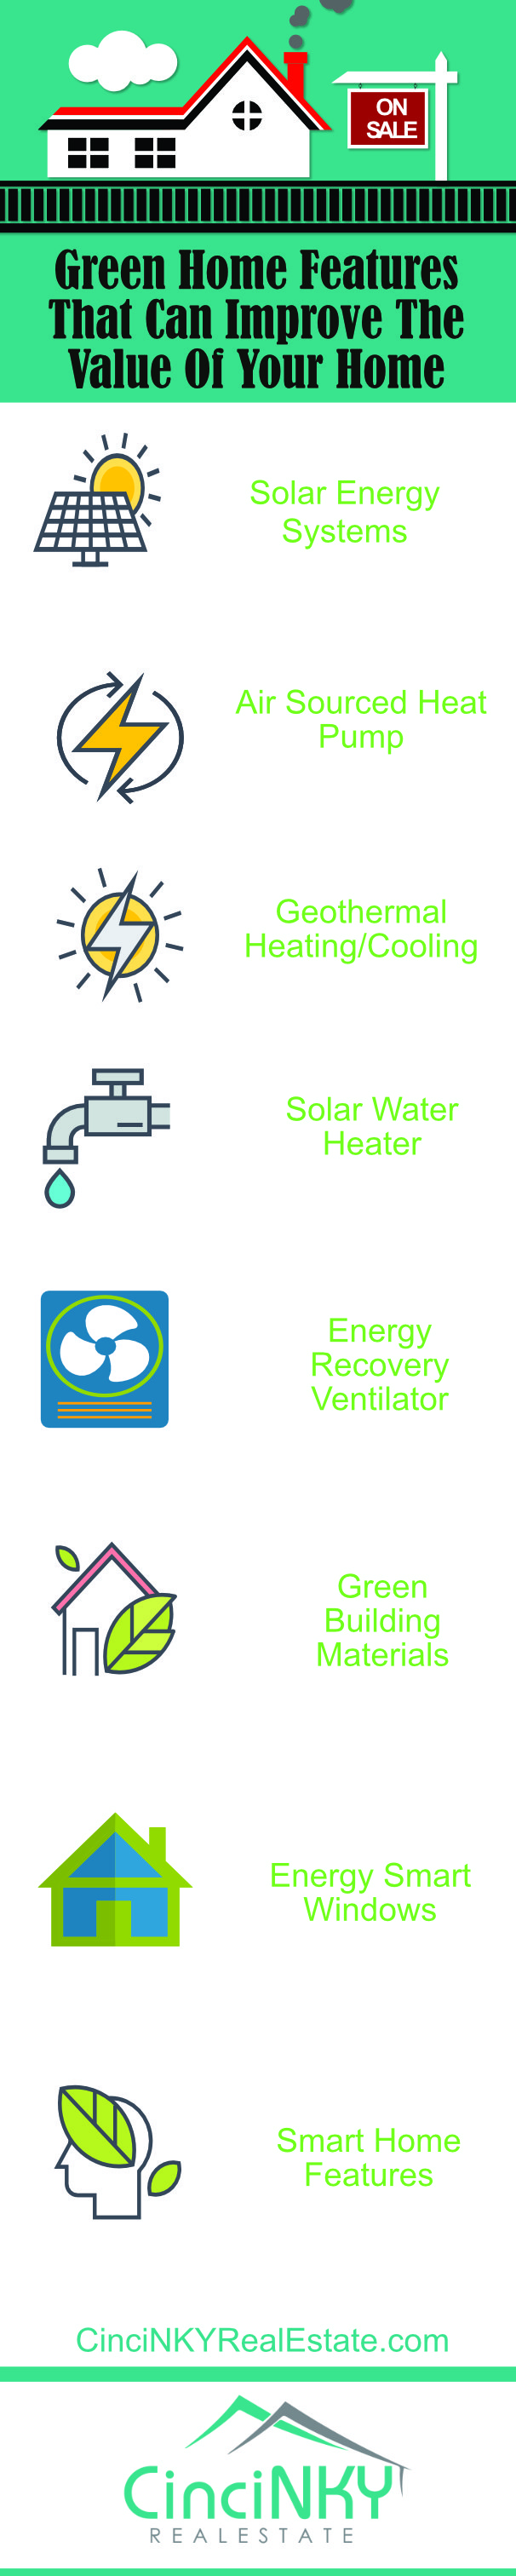 Green Home Features That Can Improve The Value Of Your Home infographic